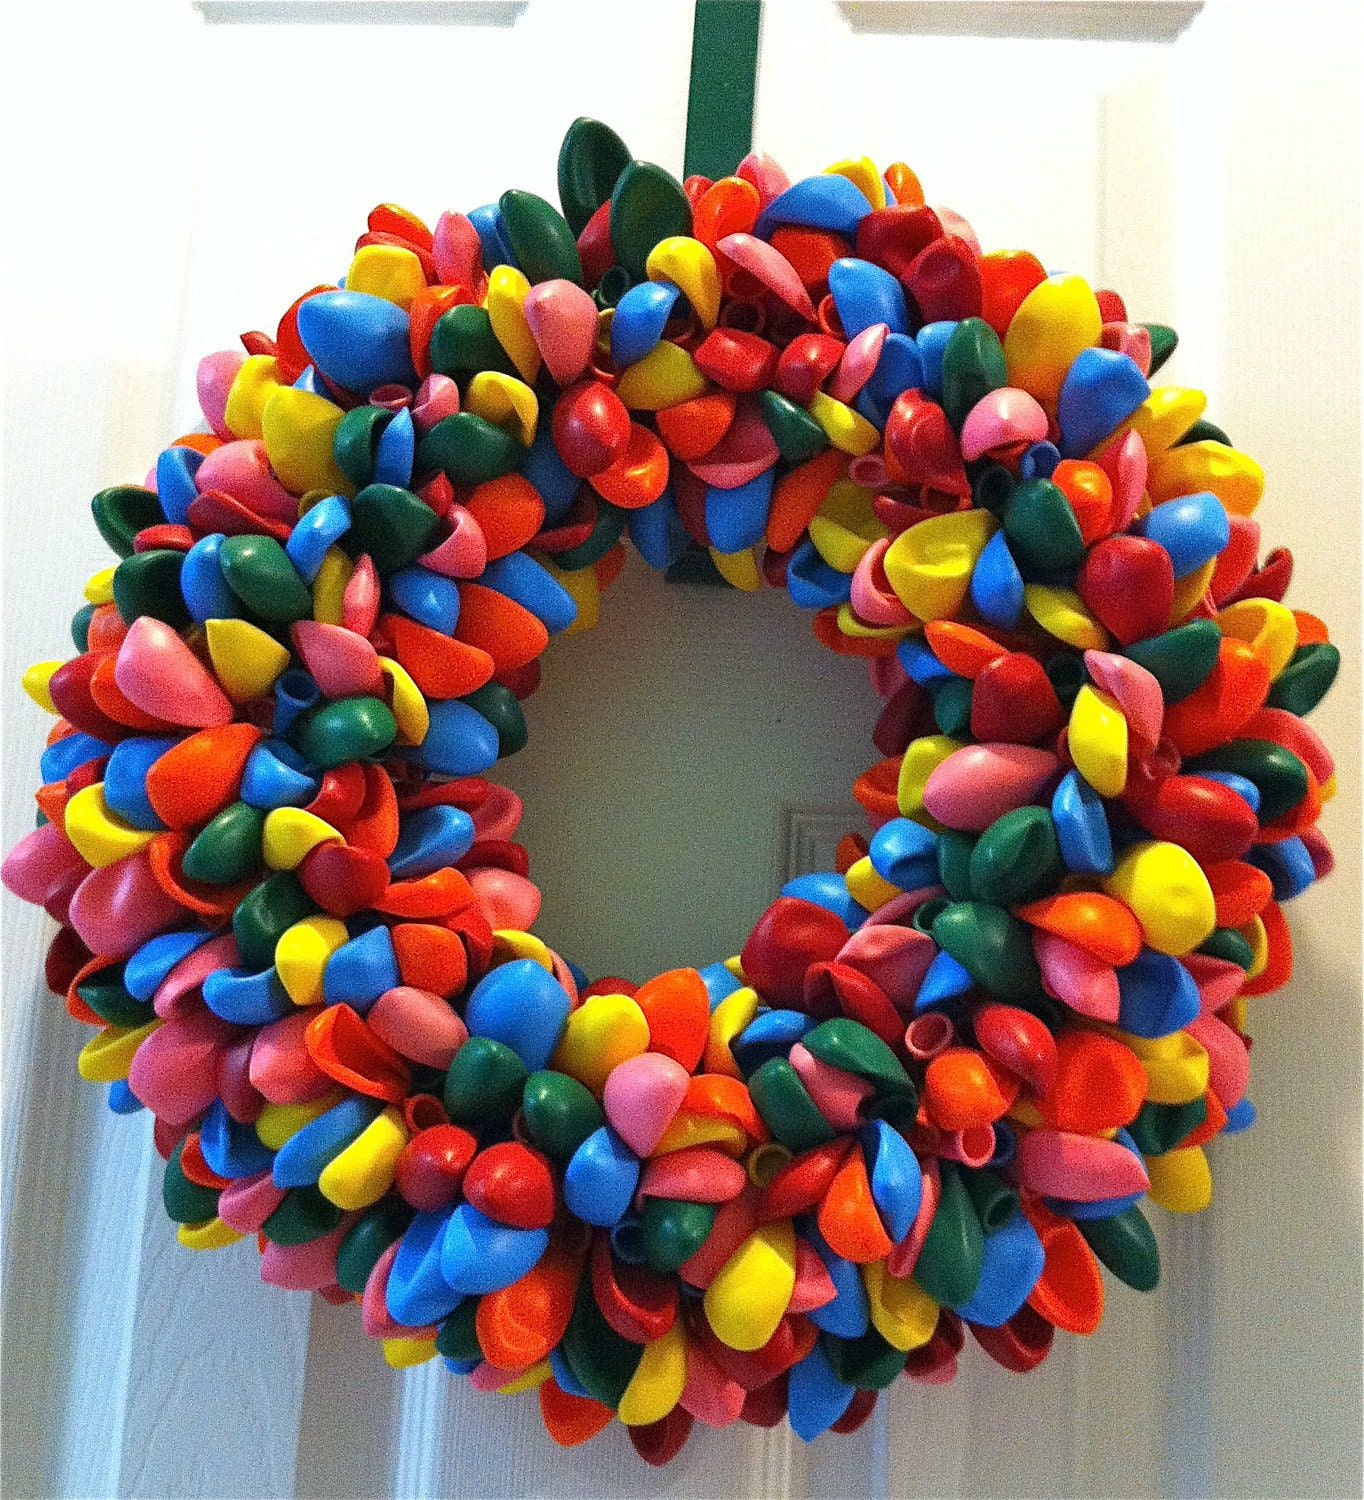 balloon wreath birthday wreath by twentysix33studio on etsy. Black Bedroom Furniture Sets. Home Design Ideas